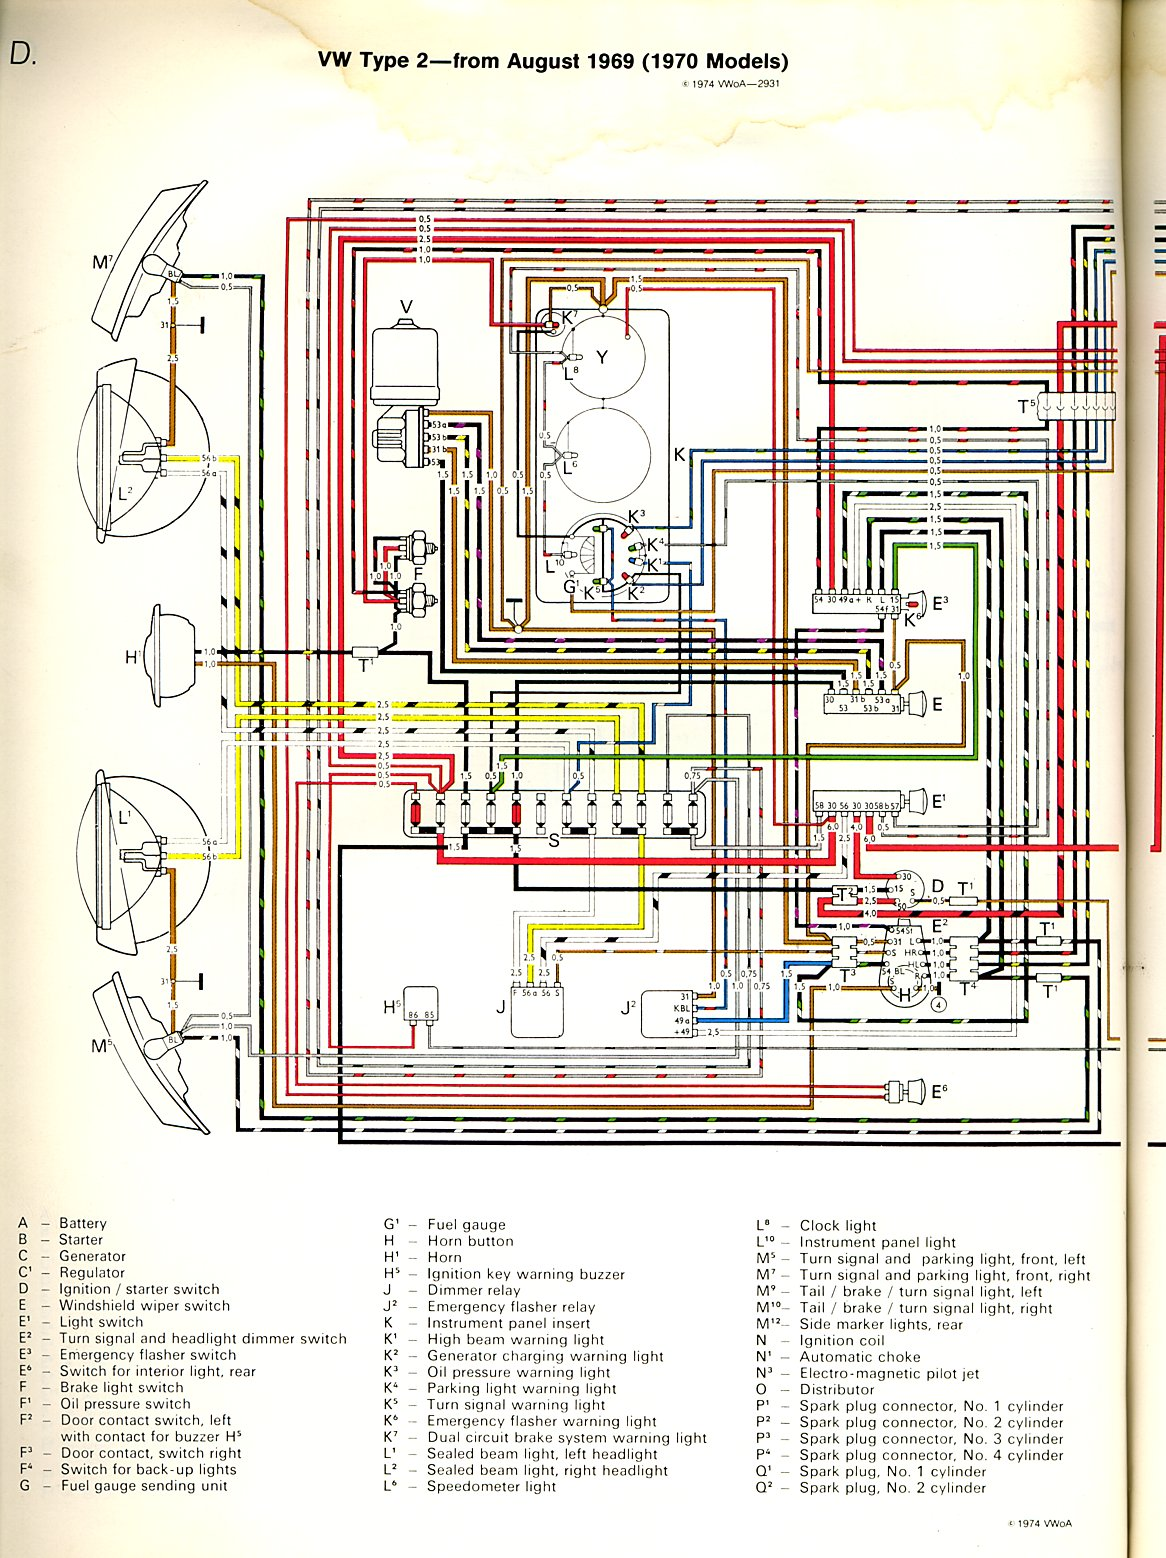 Type 2 Wiring Diagrams Wiper Diagram Toyota